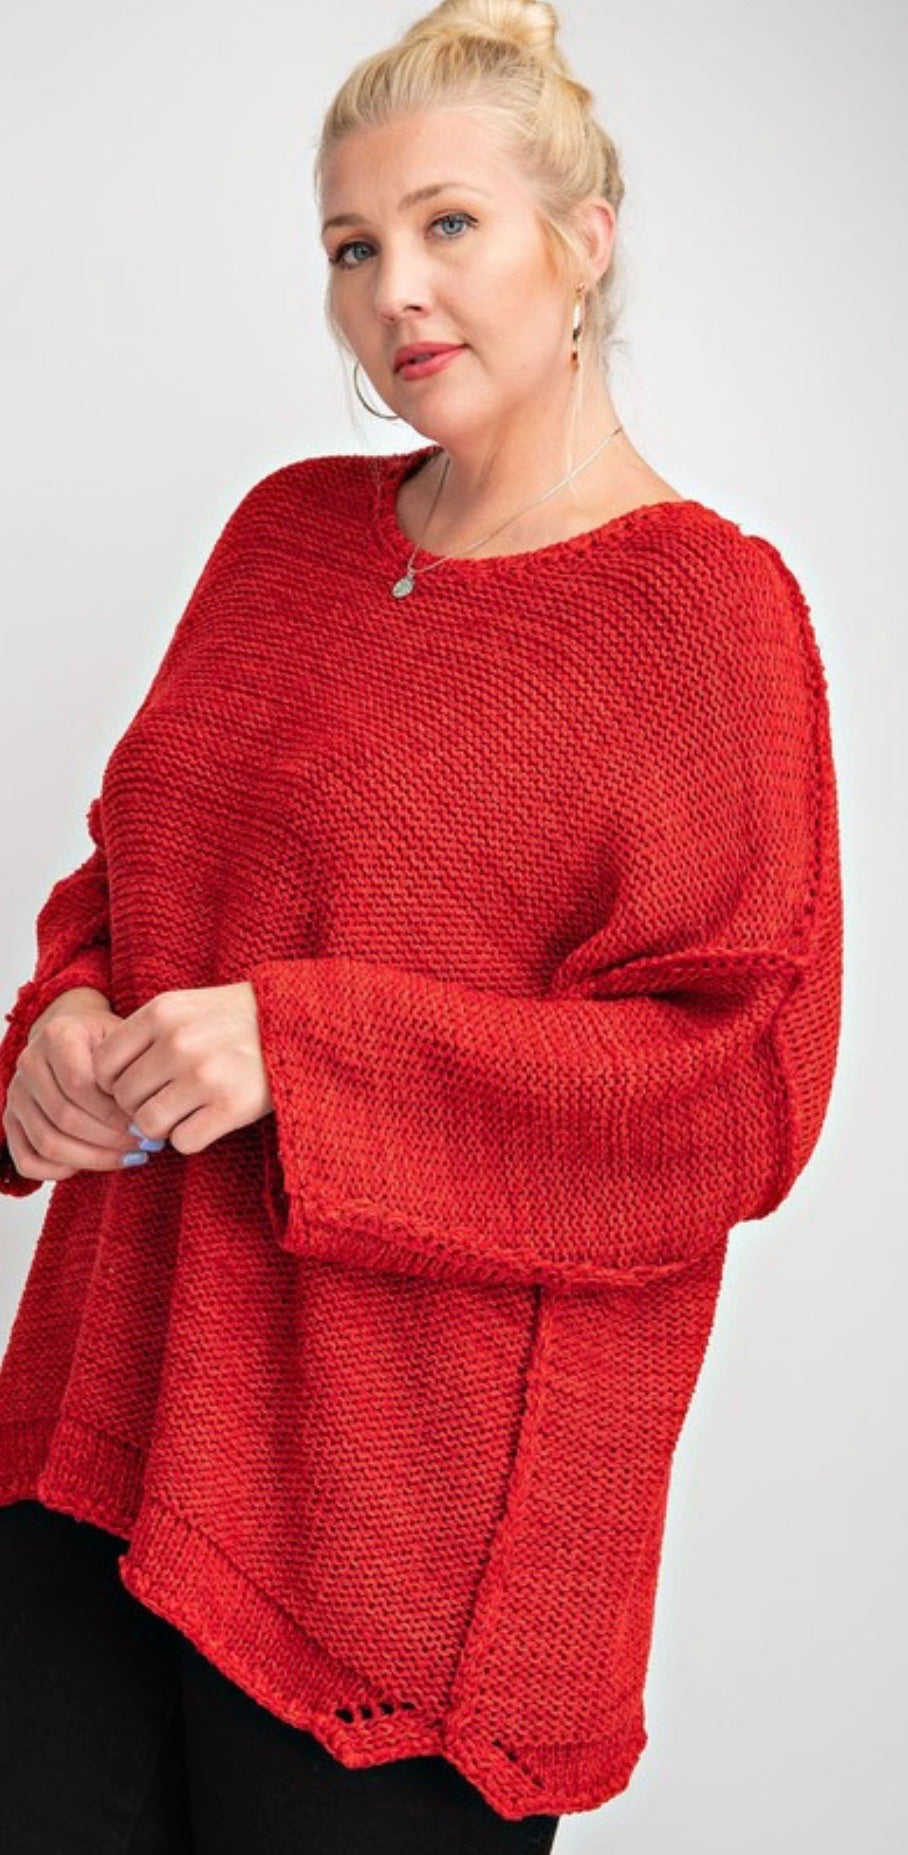 Scarlet red knitted boxy sweater | Cheeky Cactus